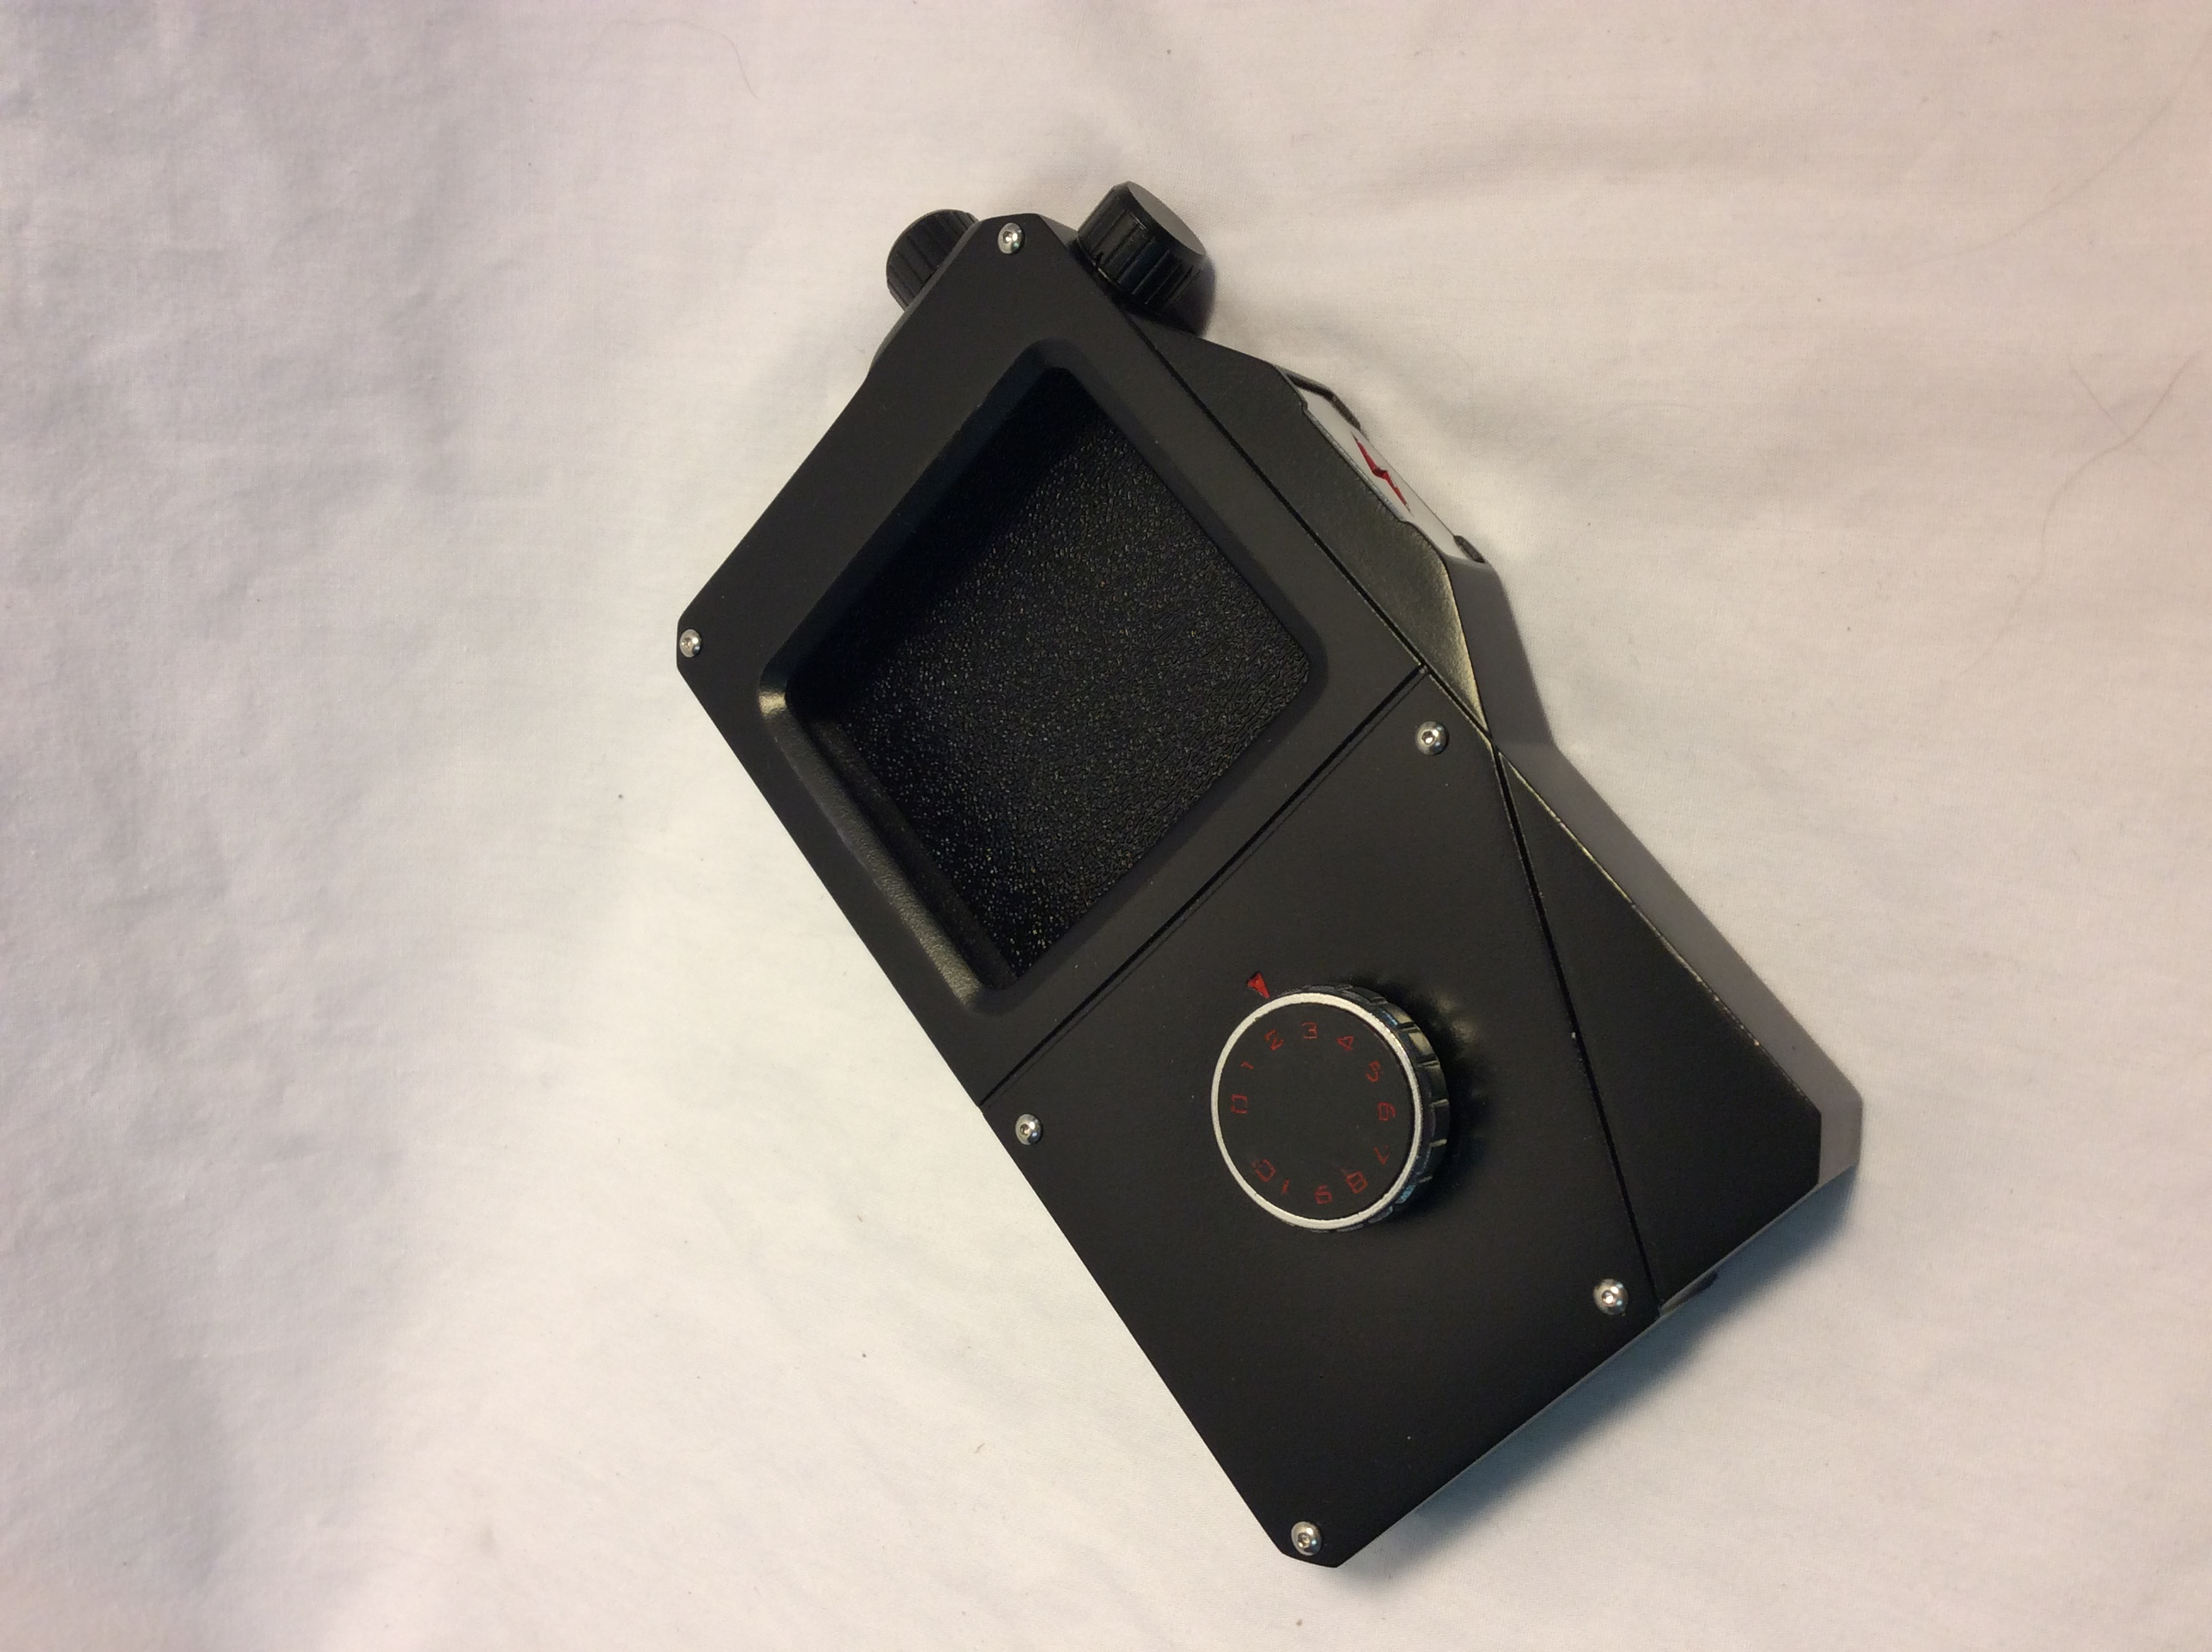 Handheld Remote case holds smartphone inside